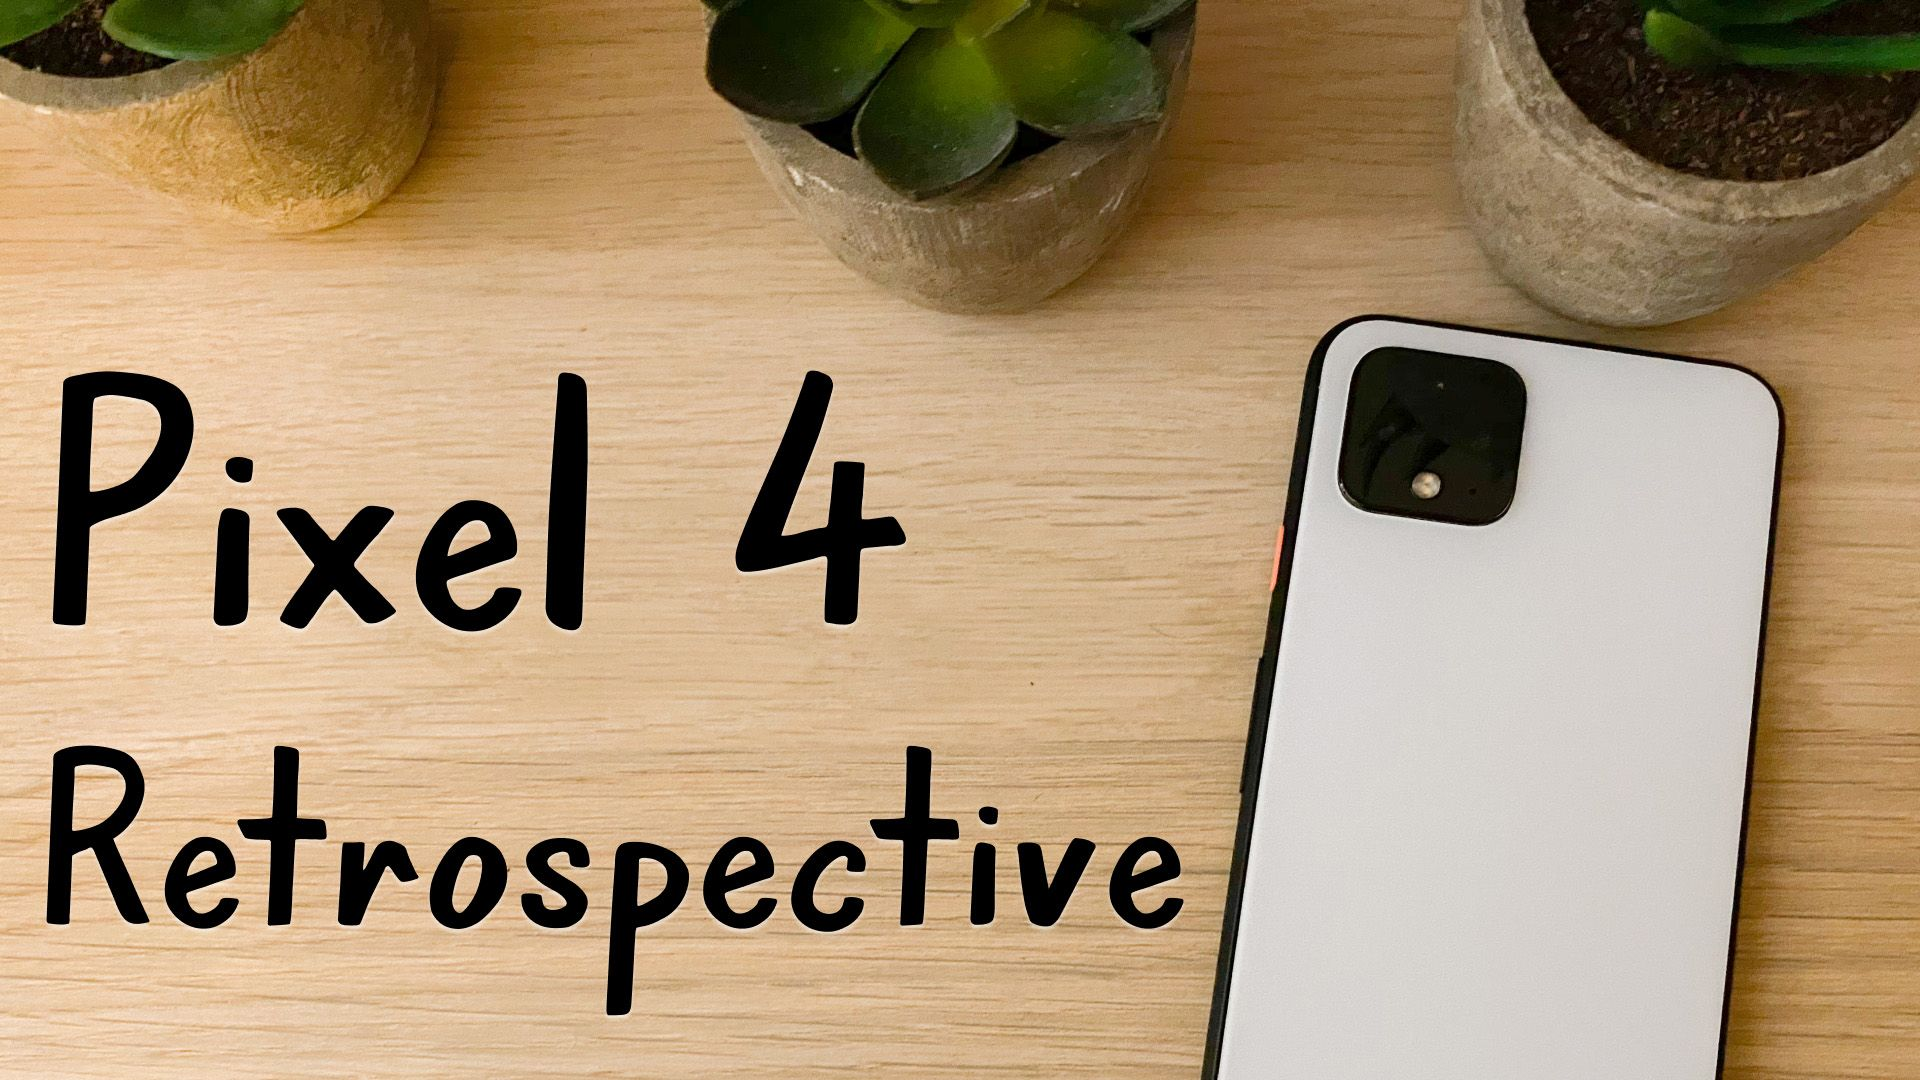 My One Year Retrospective on the Google Pixel 4